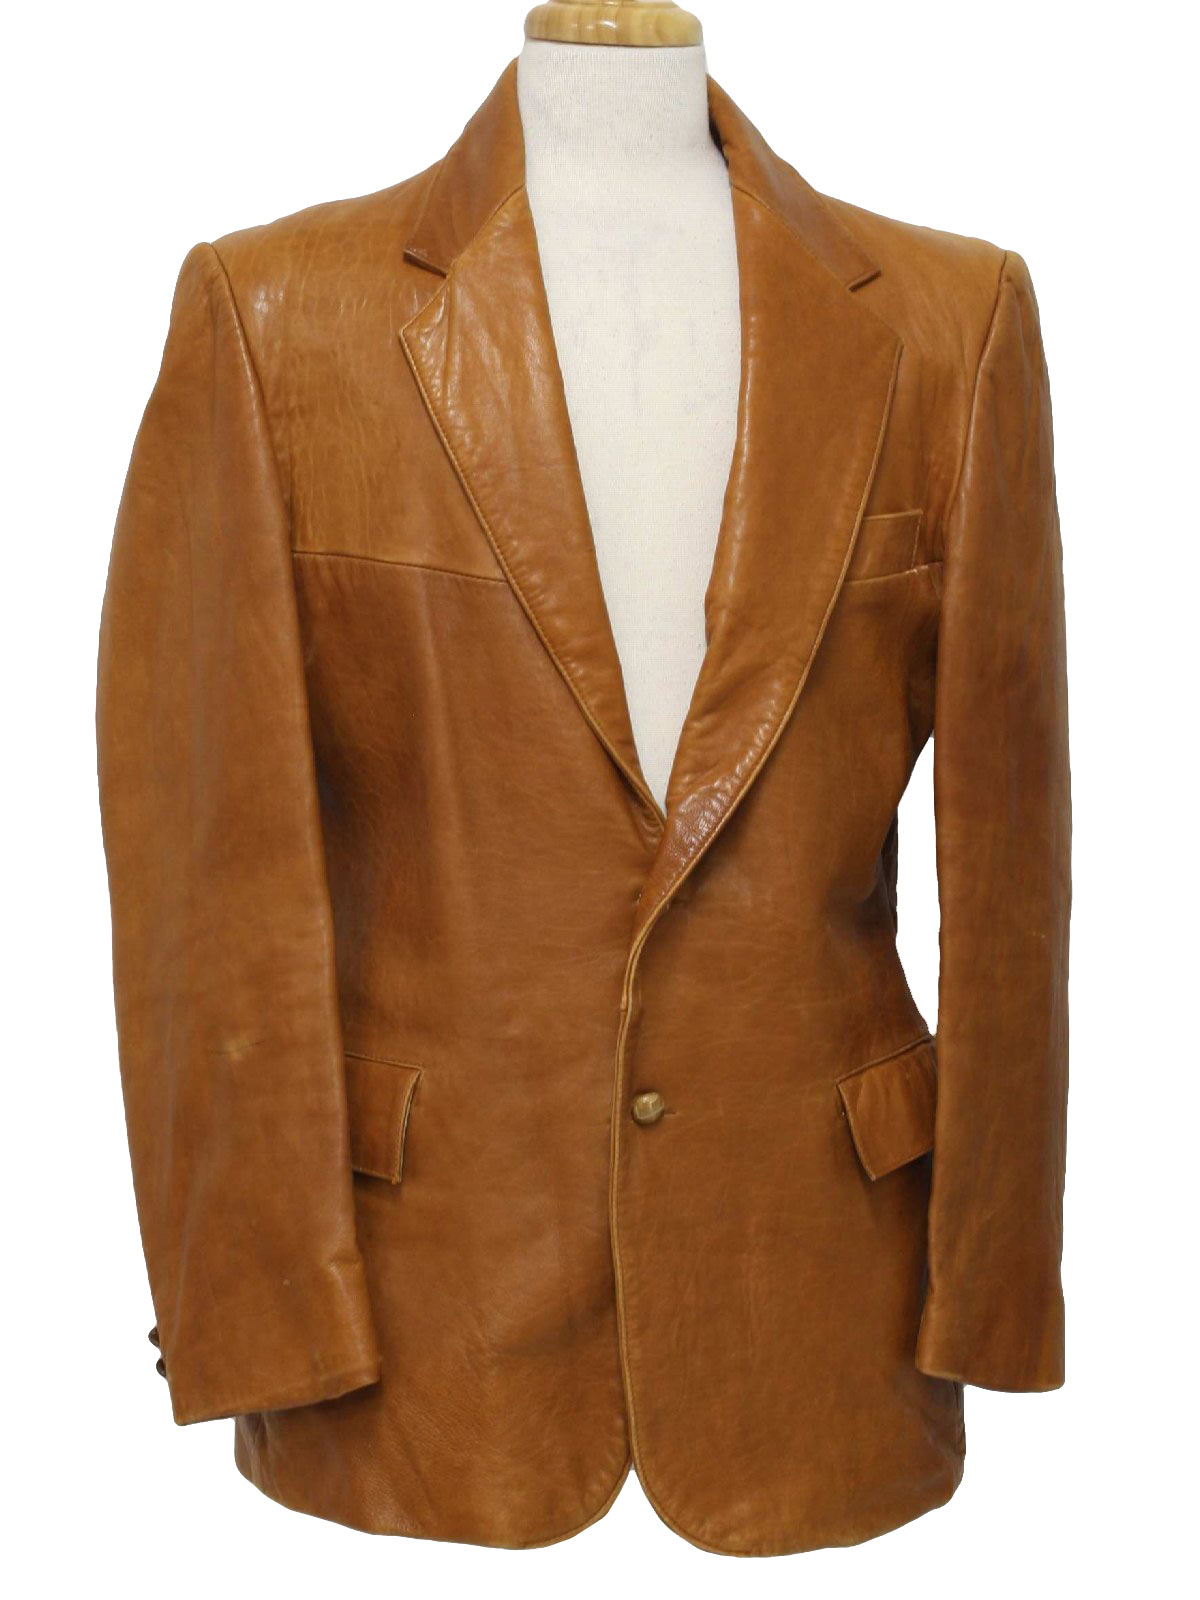 1970's Mens Leather Blazer Style Sport Coat Jacket $75.00 Not in stock. Item No. 231045